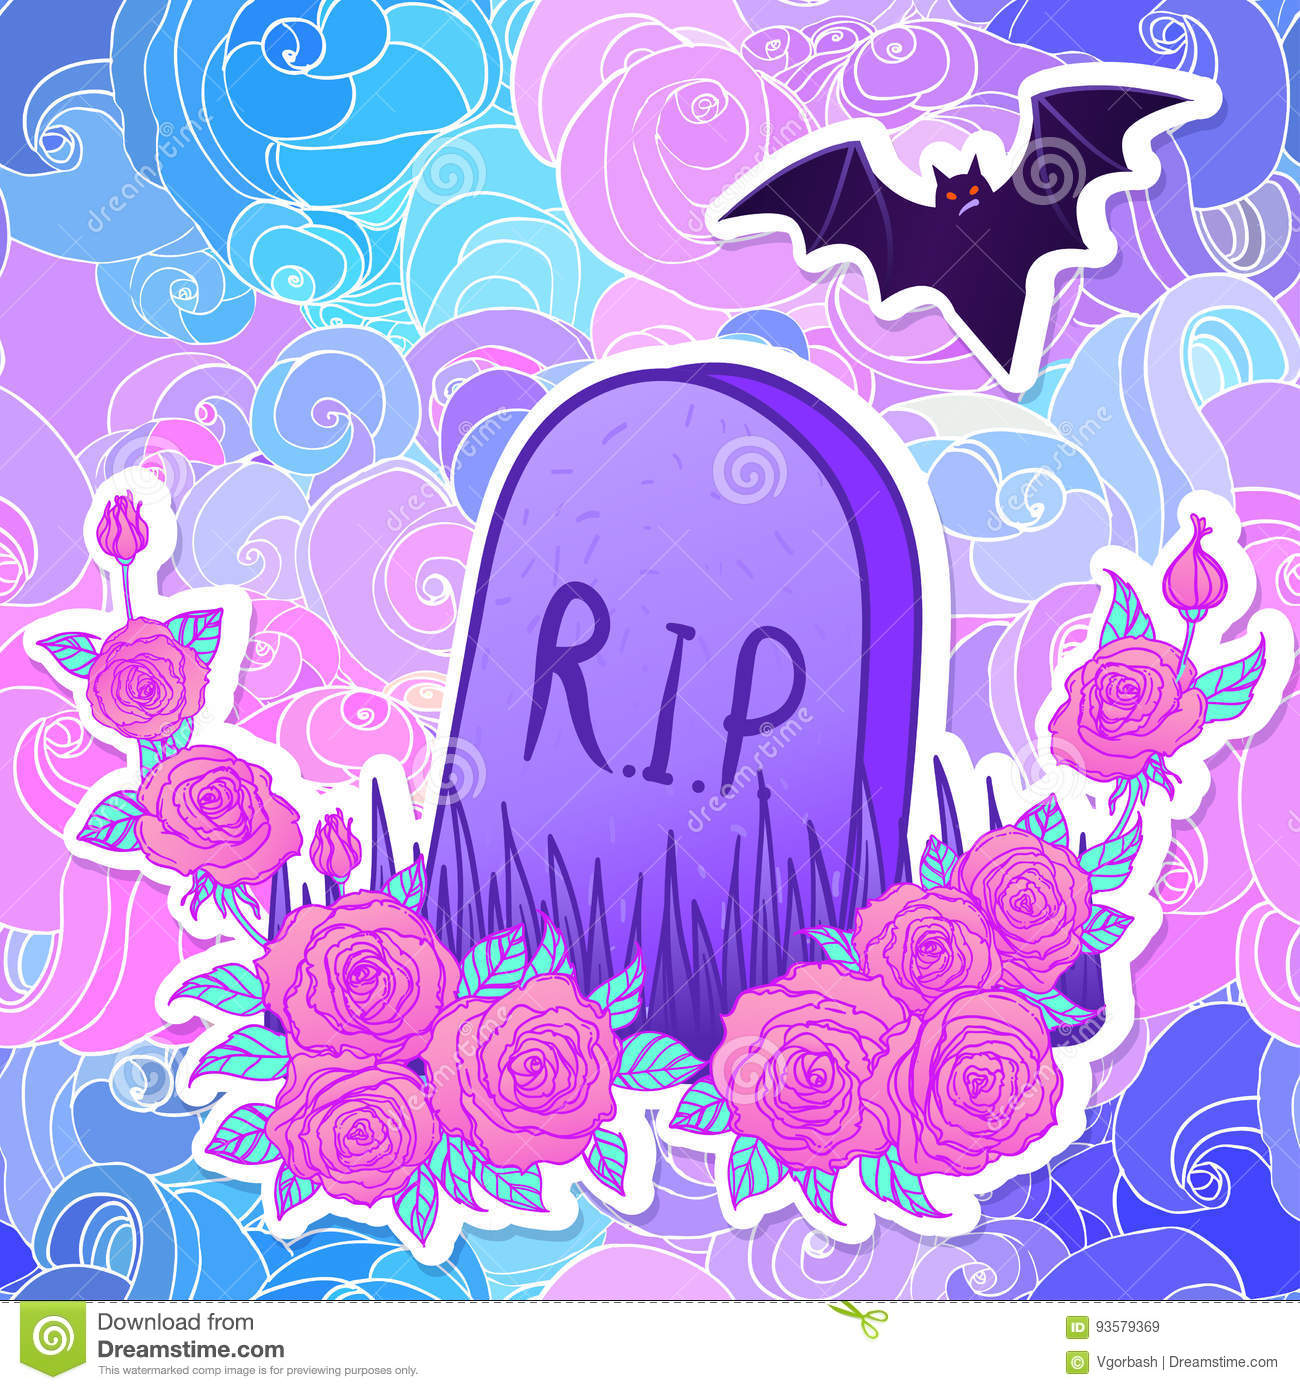 Best Wallpaper Halloween Pastel - tombstone-bat-roses-glamour-halloween-background-neon-past-pastel-colors-cute-gothic-style-colorful-rainbow-concept-93579369  Trends_936940.jpg